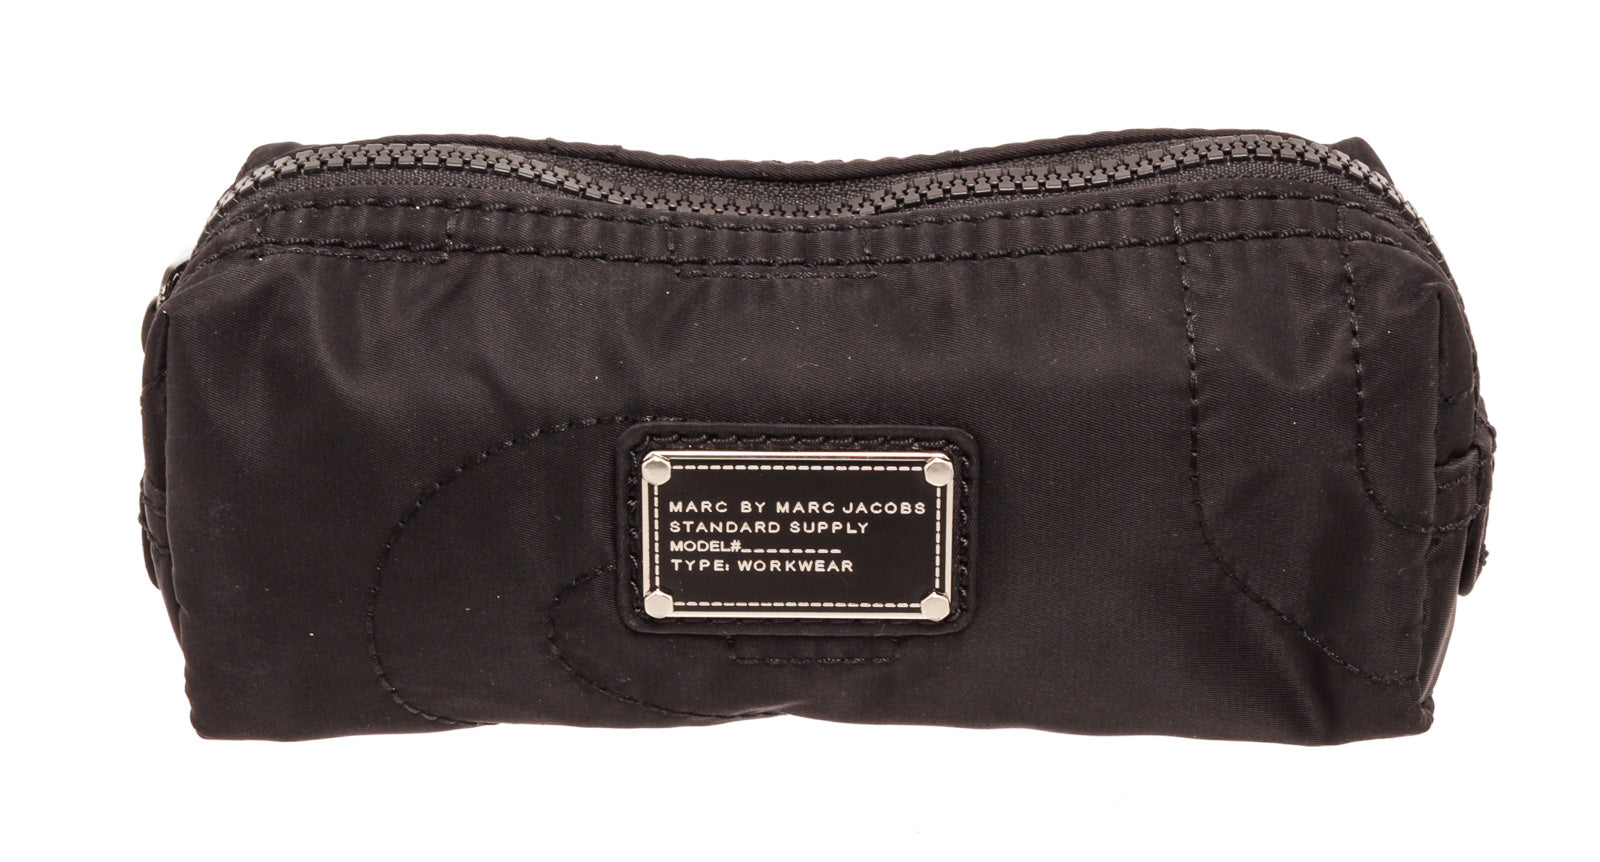 Marc By Marc Jacobs Black Nylon Cosmetic Pouch